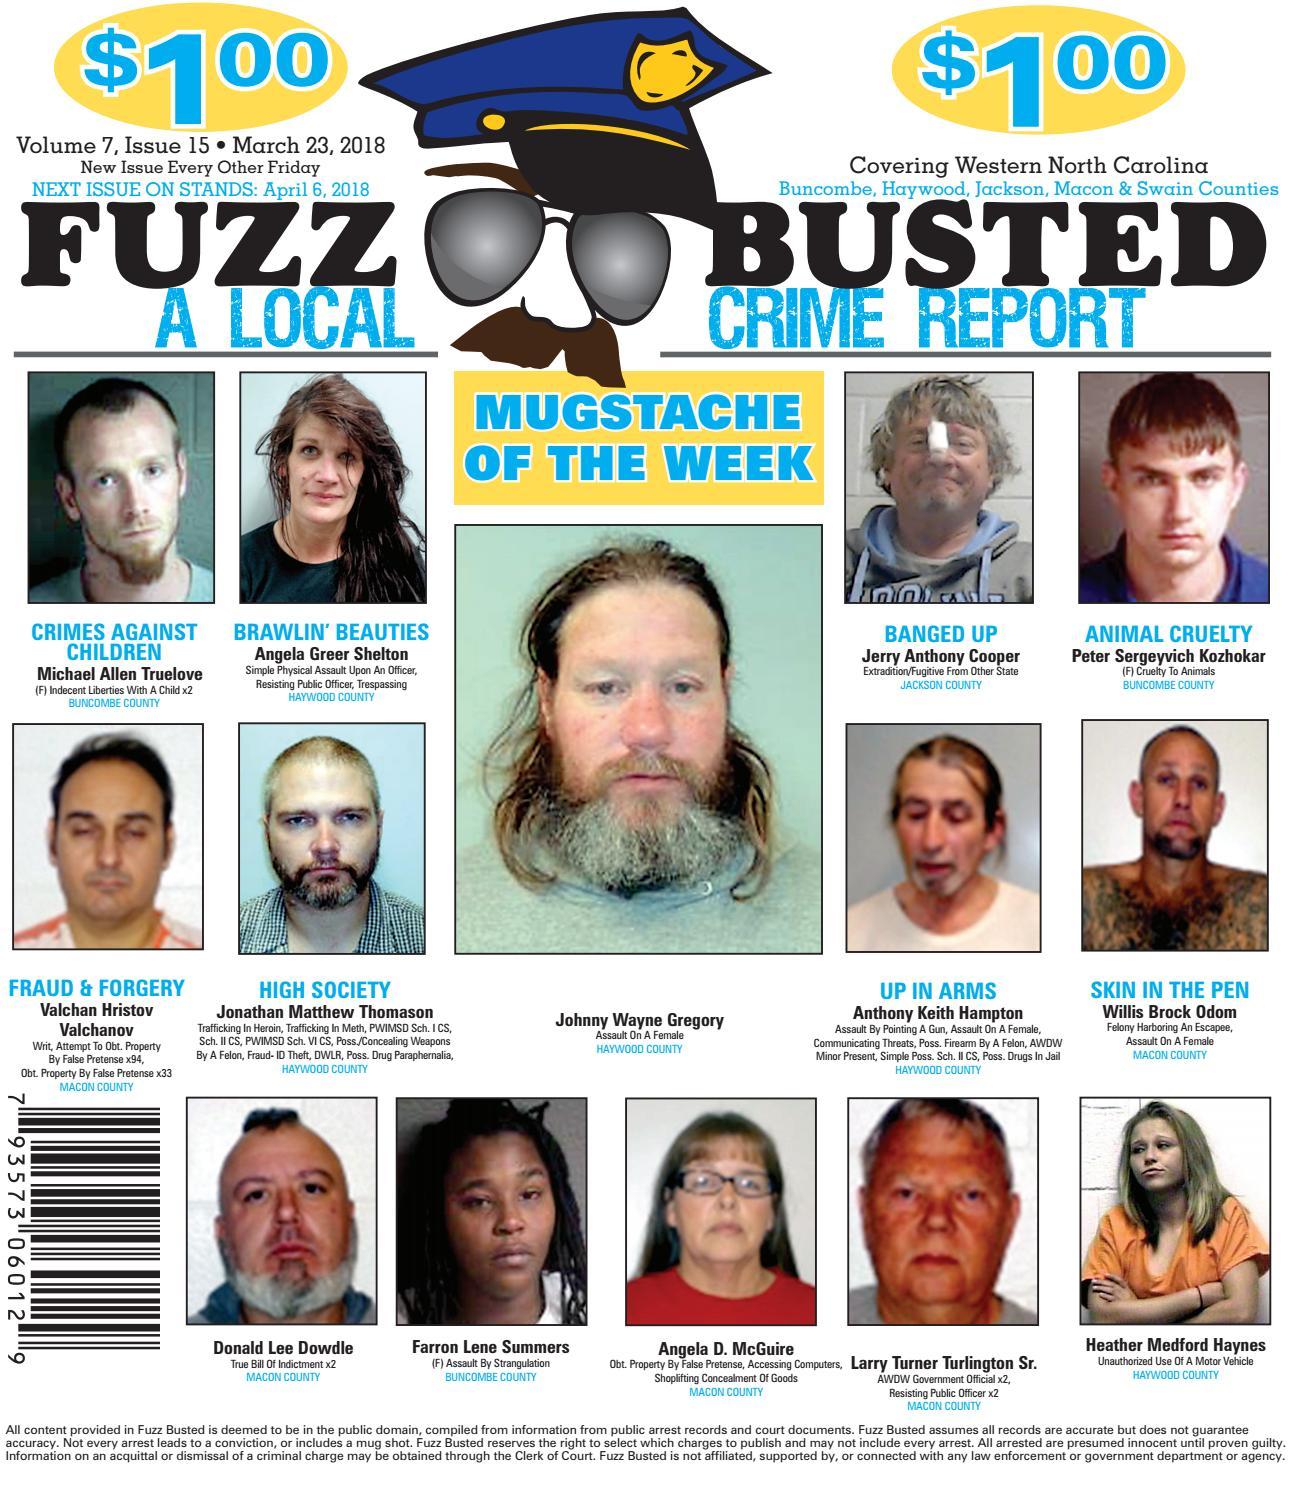 Volume 7 Issue 15 • March 23, 2018 by Fuzz Busted - issuu